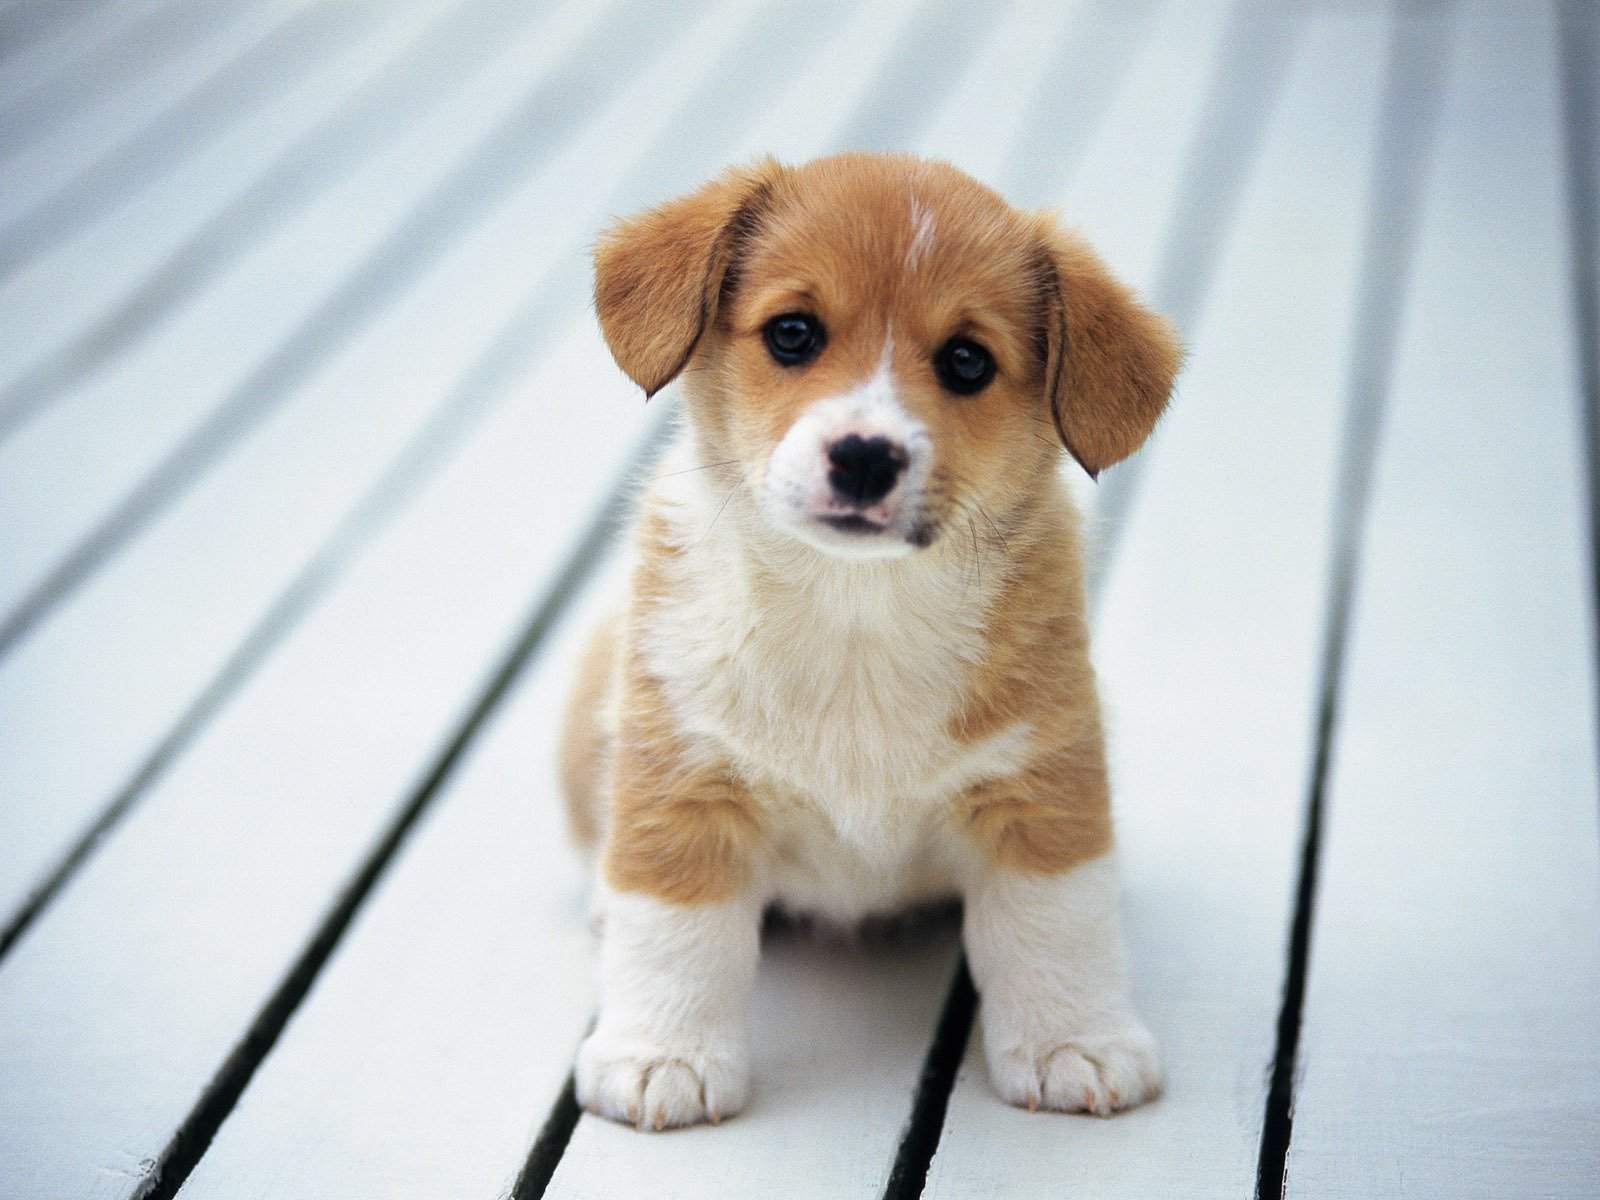 to Images of the Cutest Puppies and Dogs in The World Next Image 1600x1200